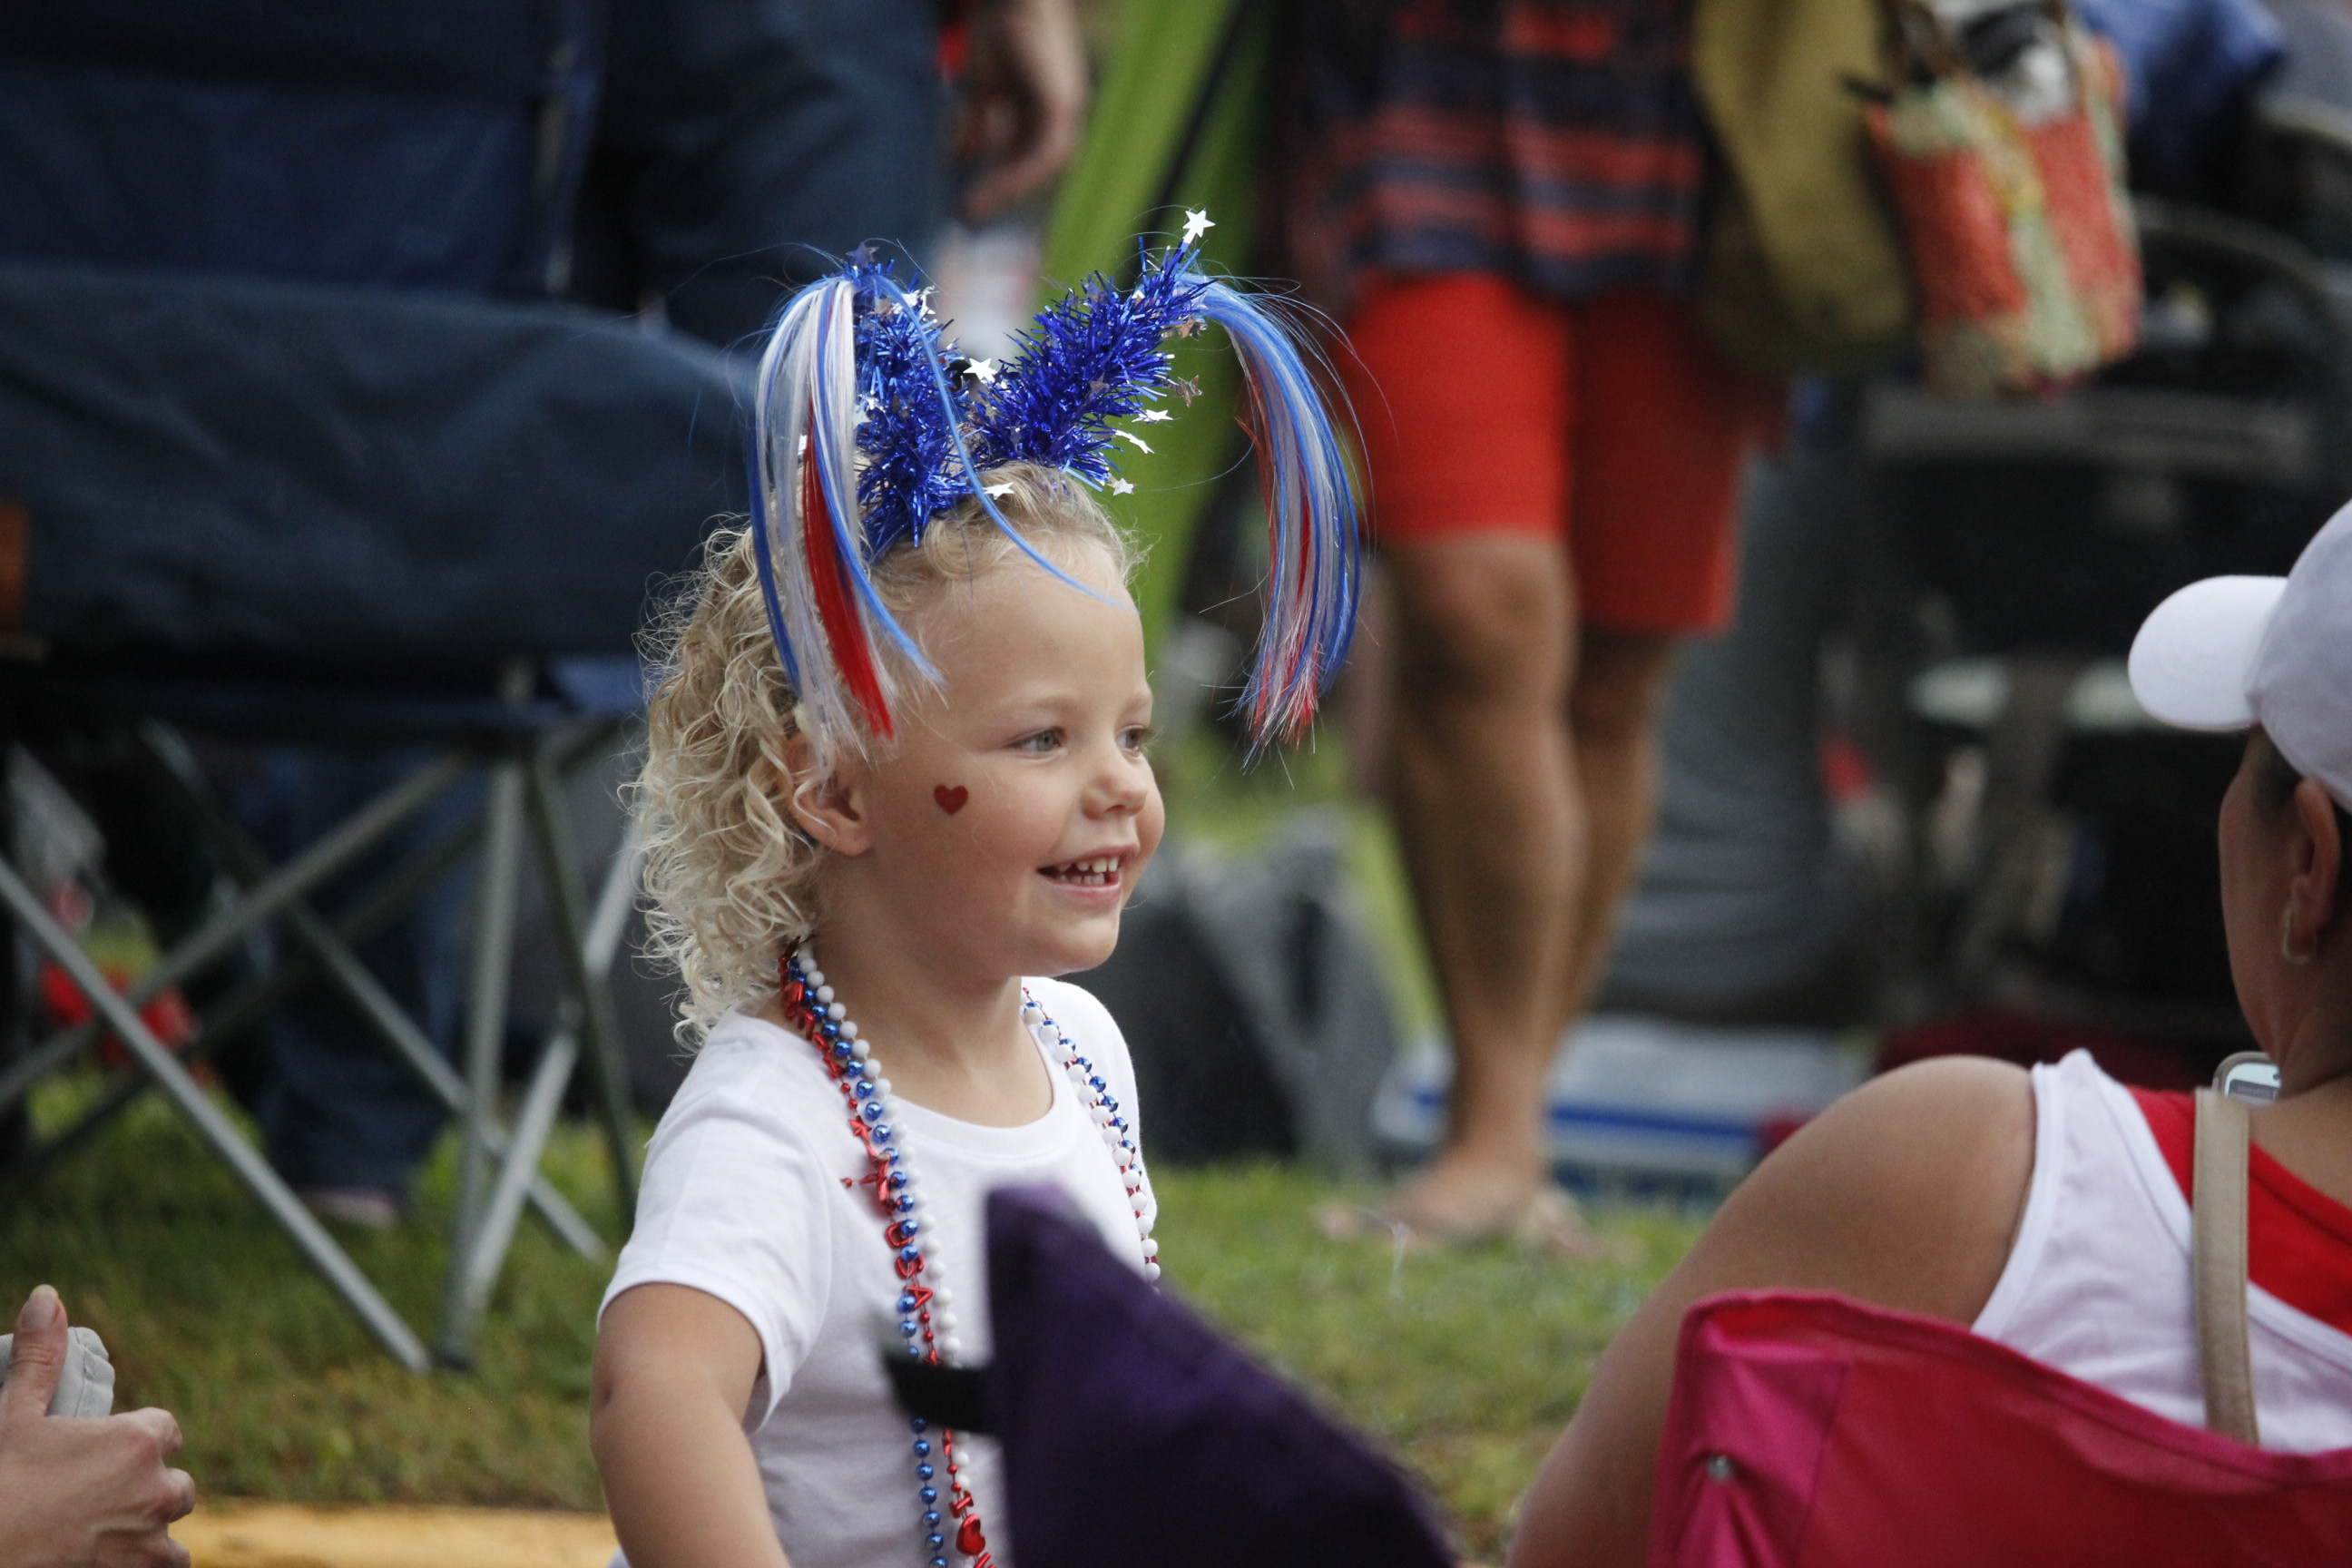 Rain didn't stop South County from enjoying the 20th year of the JB Blast at Jefferson Barracks Park in 2019, featuring live music, an appearance from County Executive Sam Page and a fireworks show. That year, 6th District Councilman Ernie Trakas was in charge of the festivities, after the resignation of former County Executive Steve Stenger.